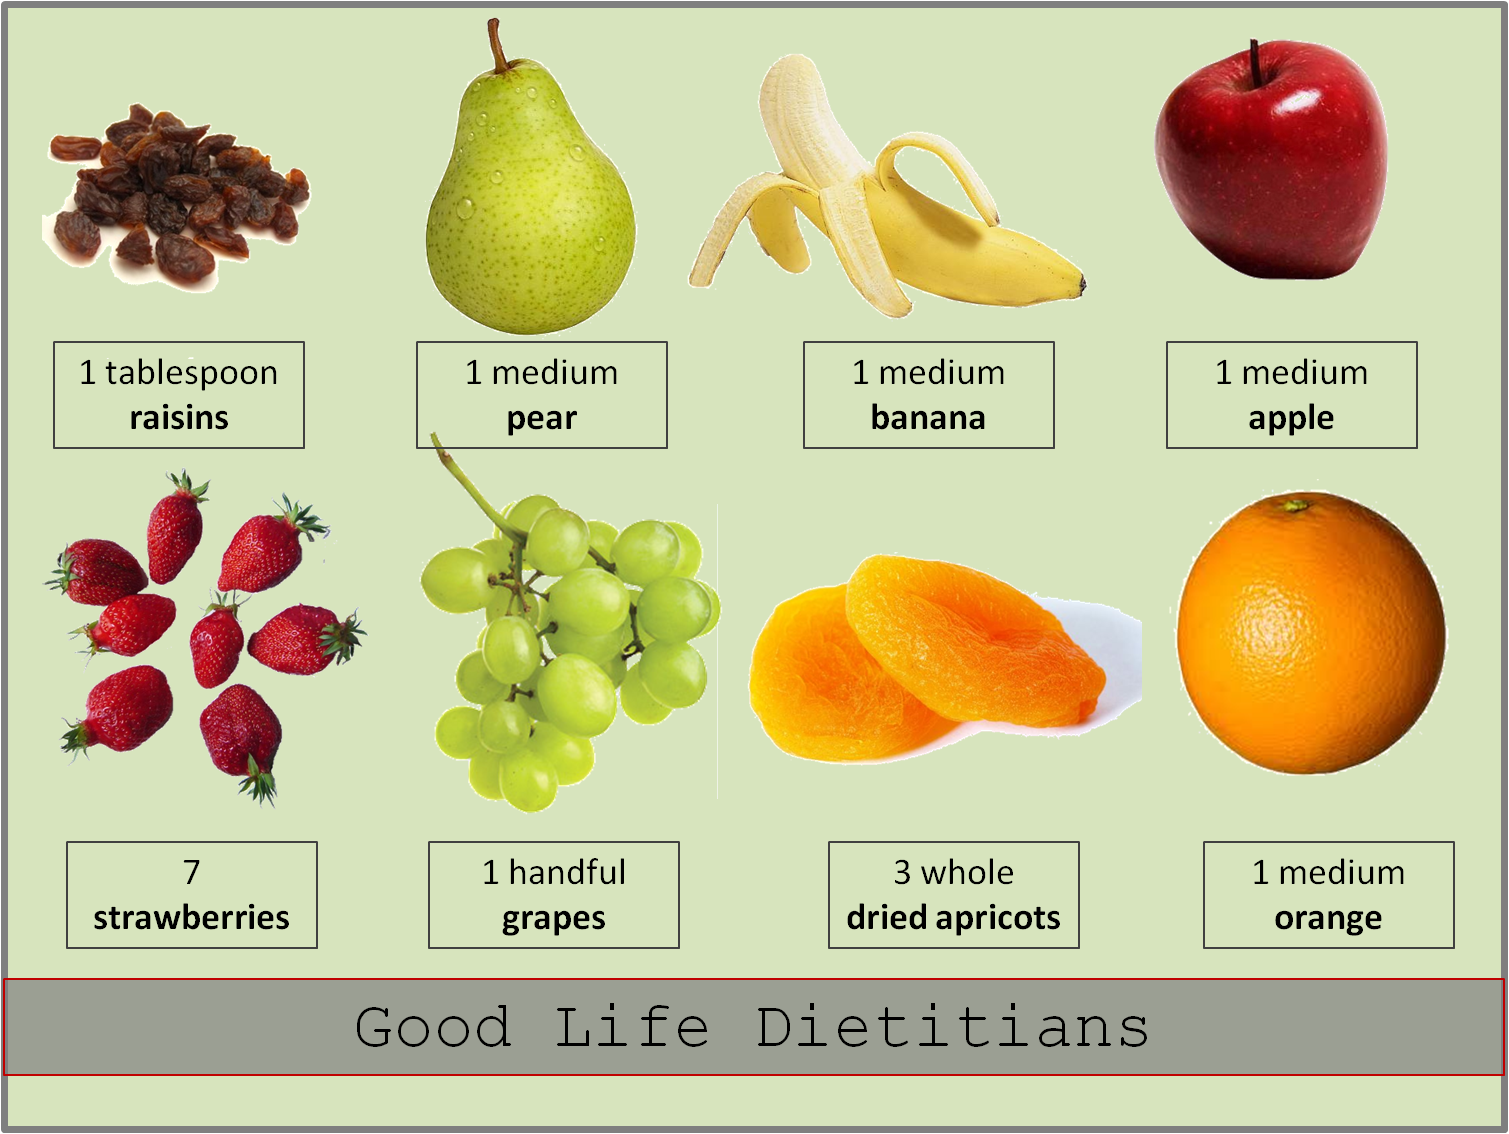 Good Life Dietitians Top 10 Post Of 2011 Fruit And